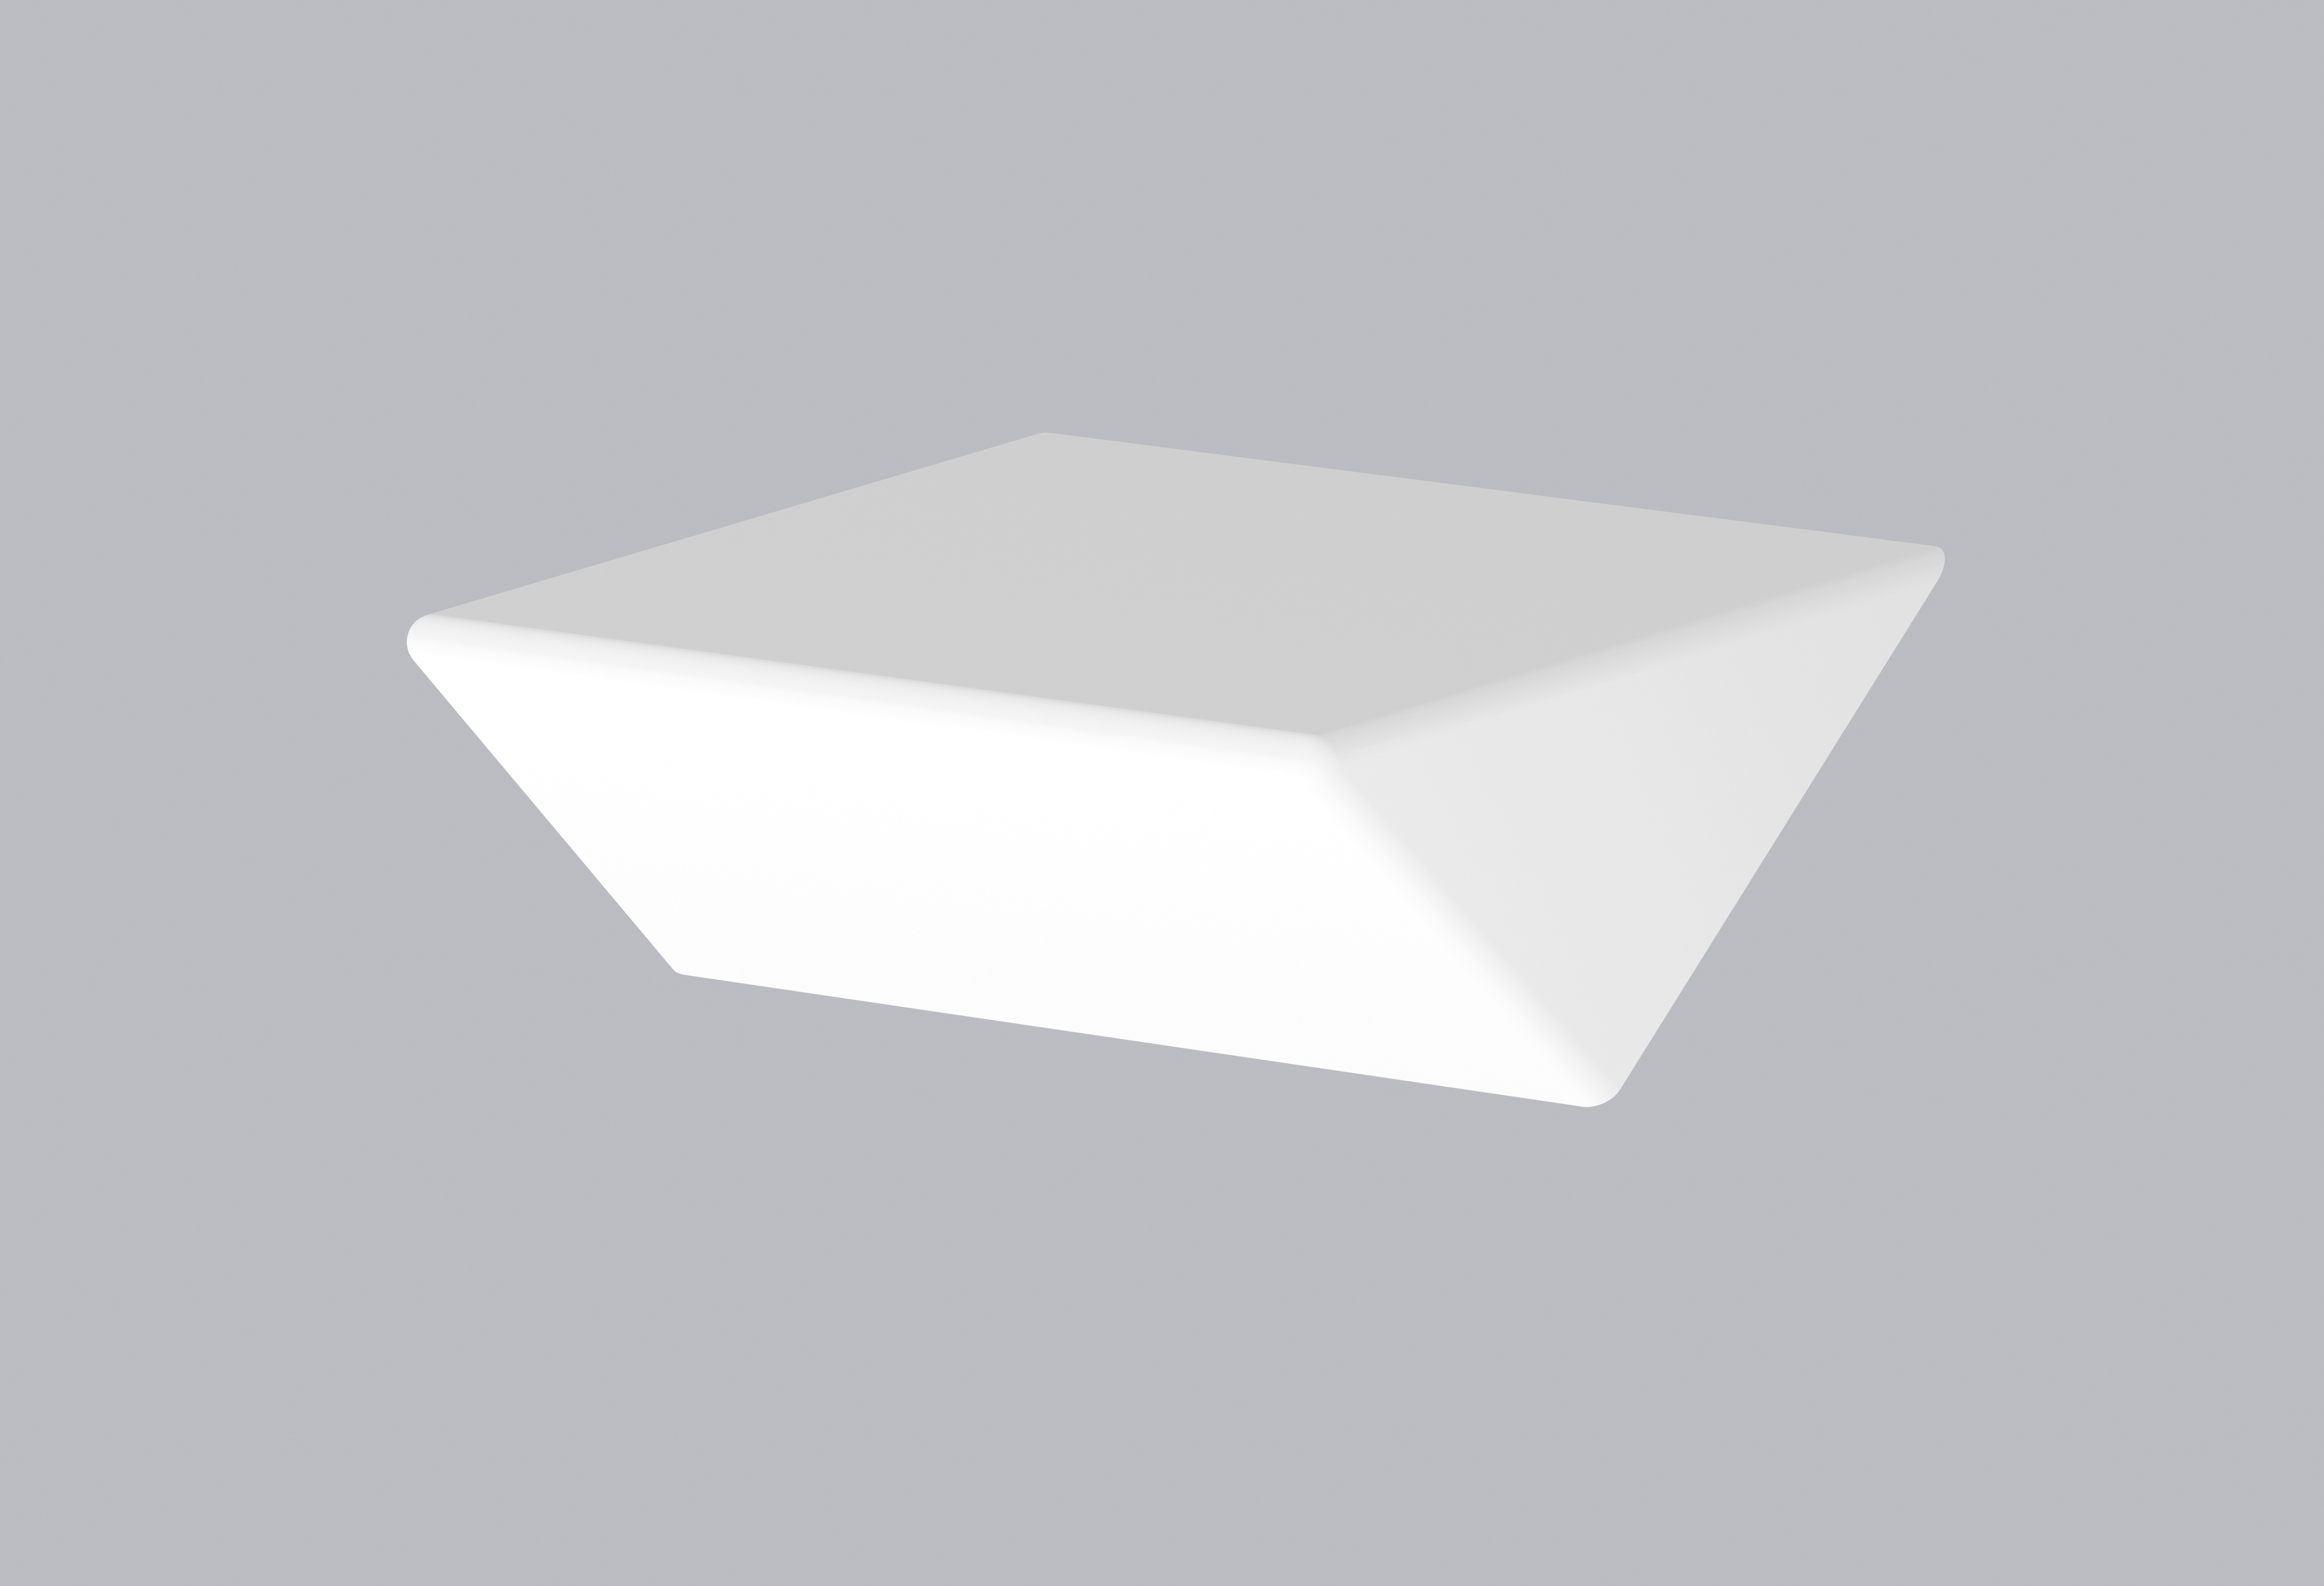 02_arstyl_LED-clips (1)